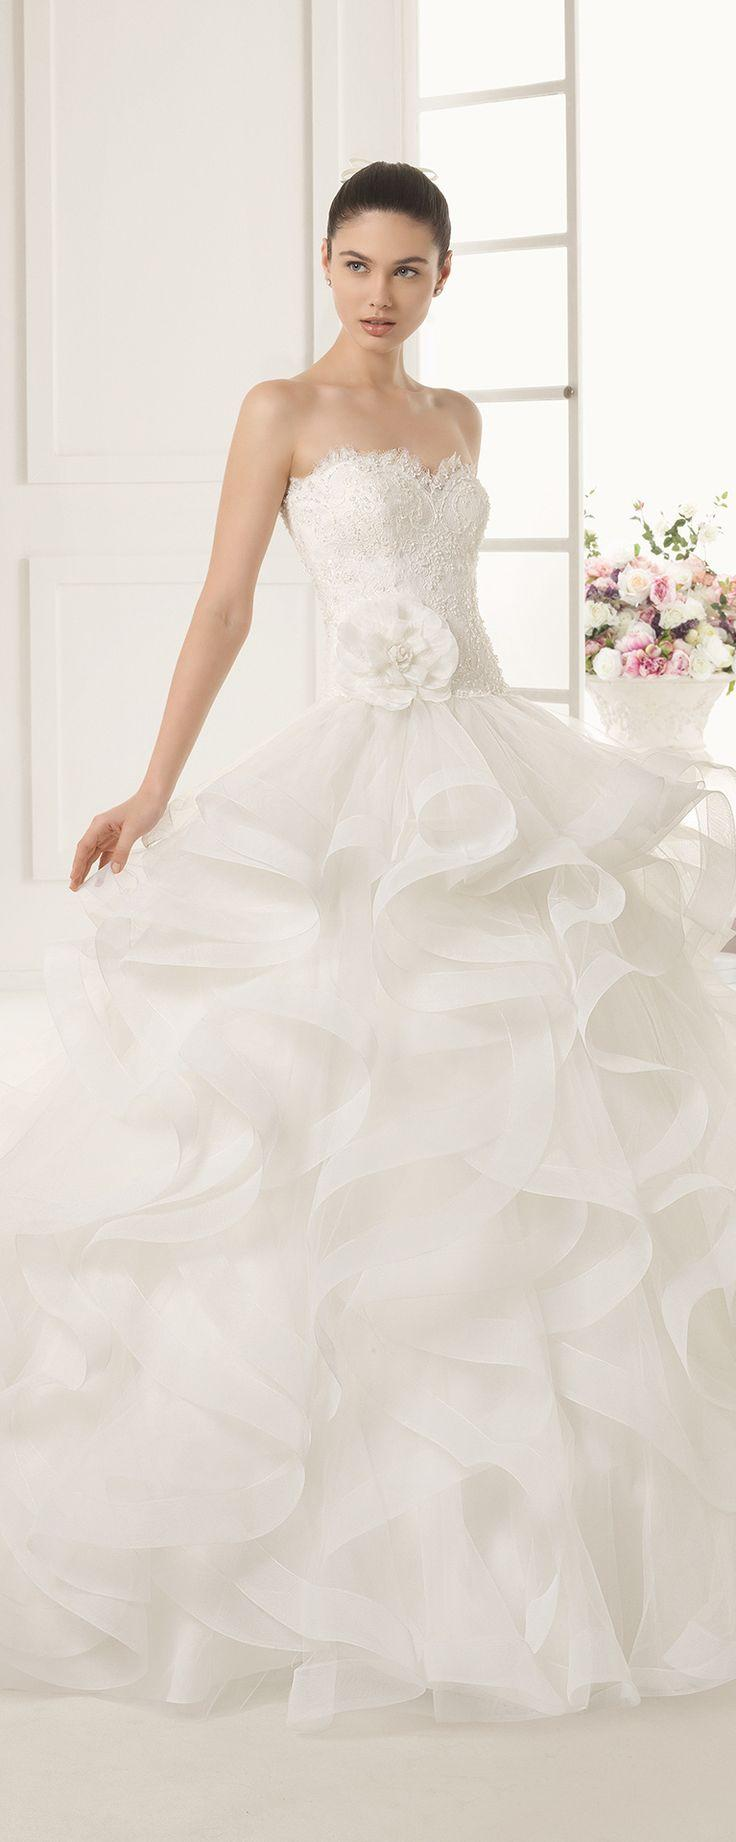 Wedding - Gorgeous Bridal Gown